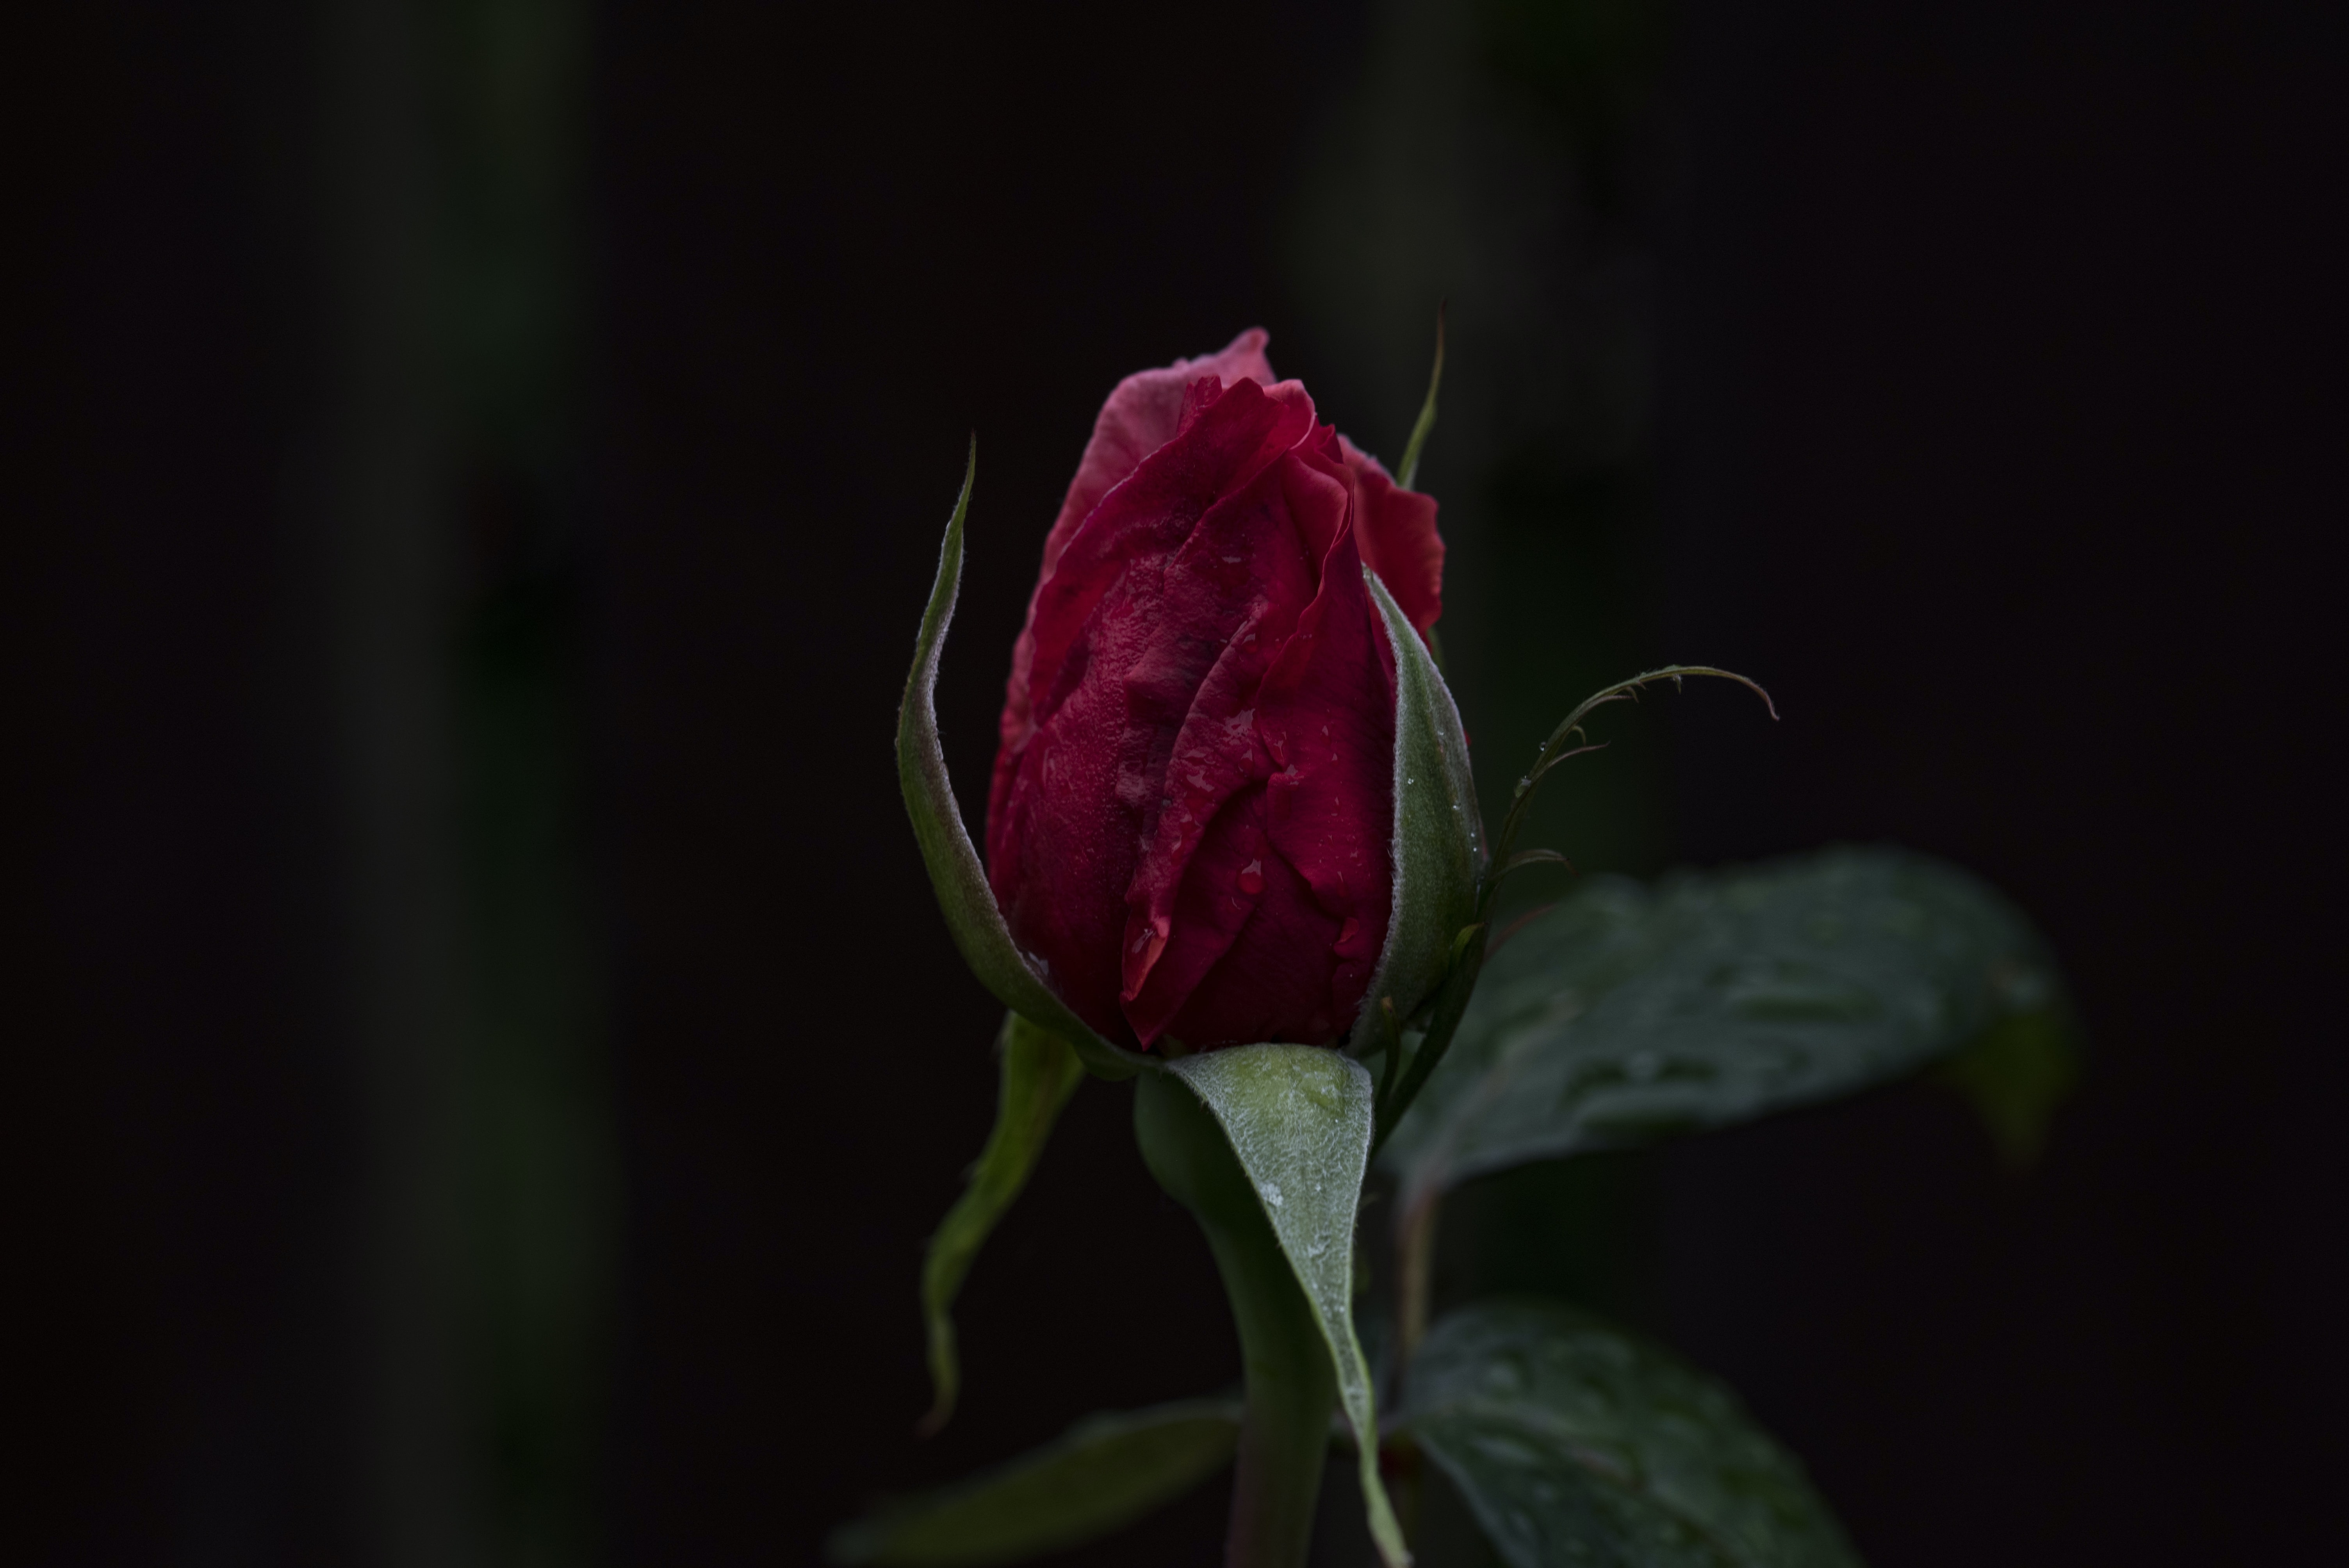 A macro shot of a bussing deep red rose